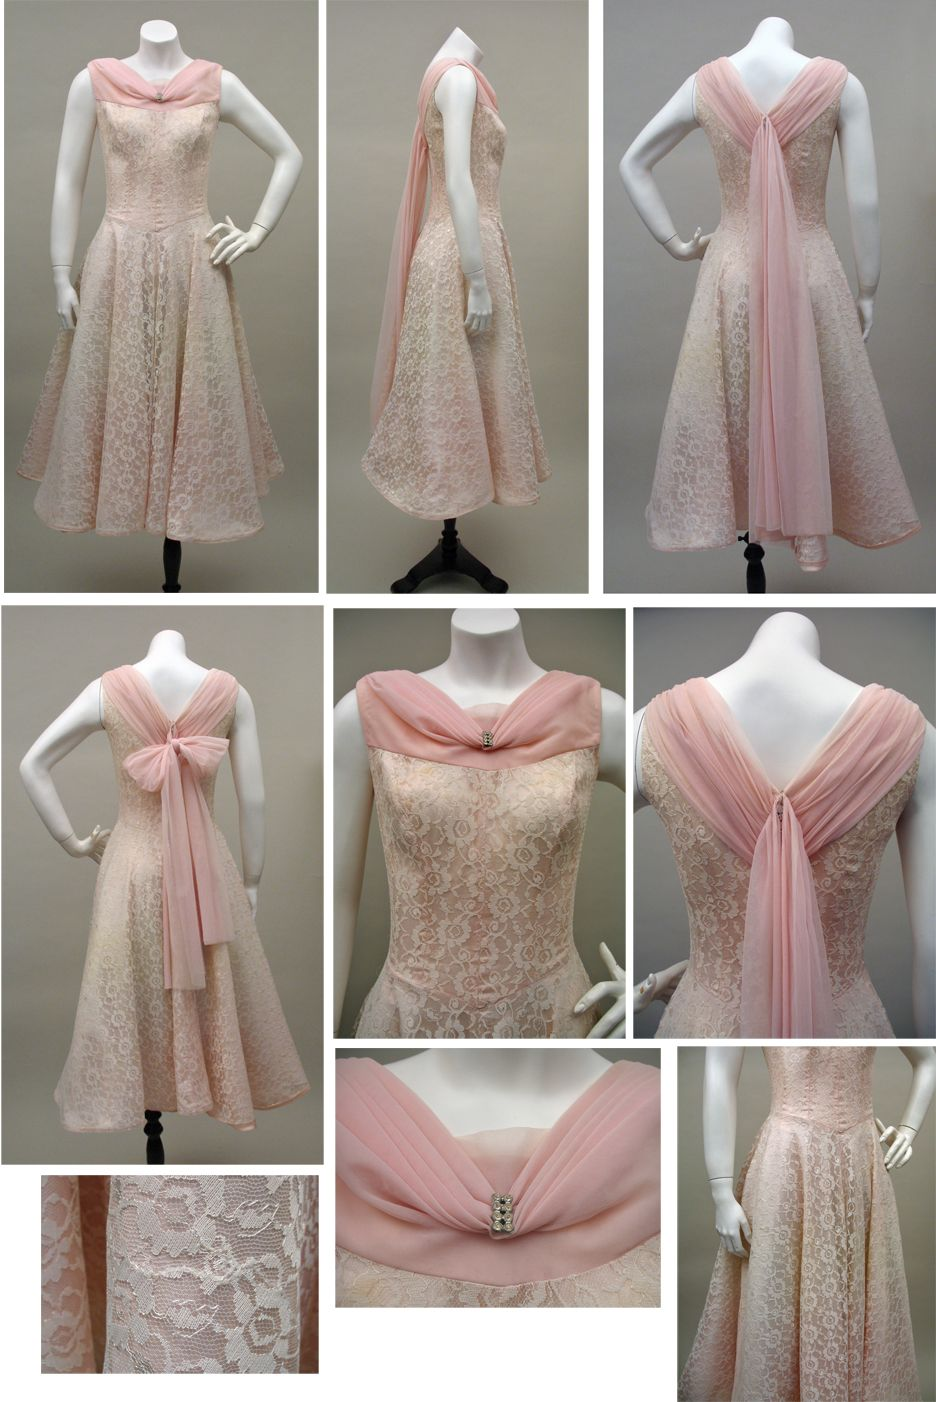 1950s Pink Lace and Taffeta Vintage Party Dress